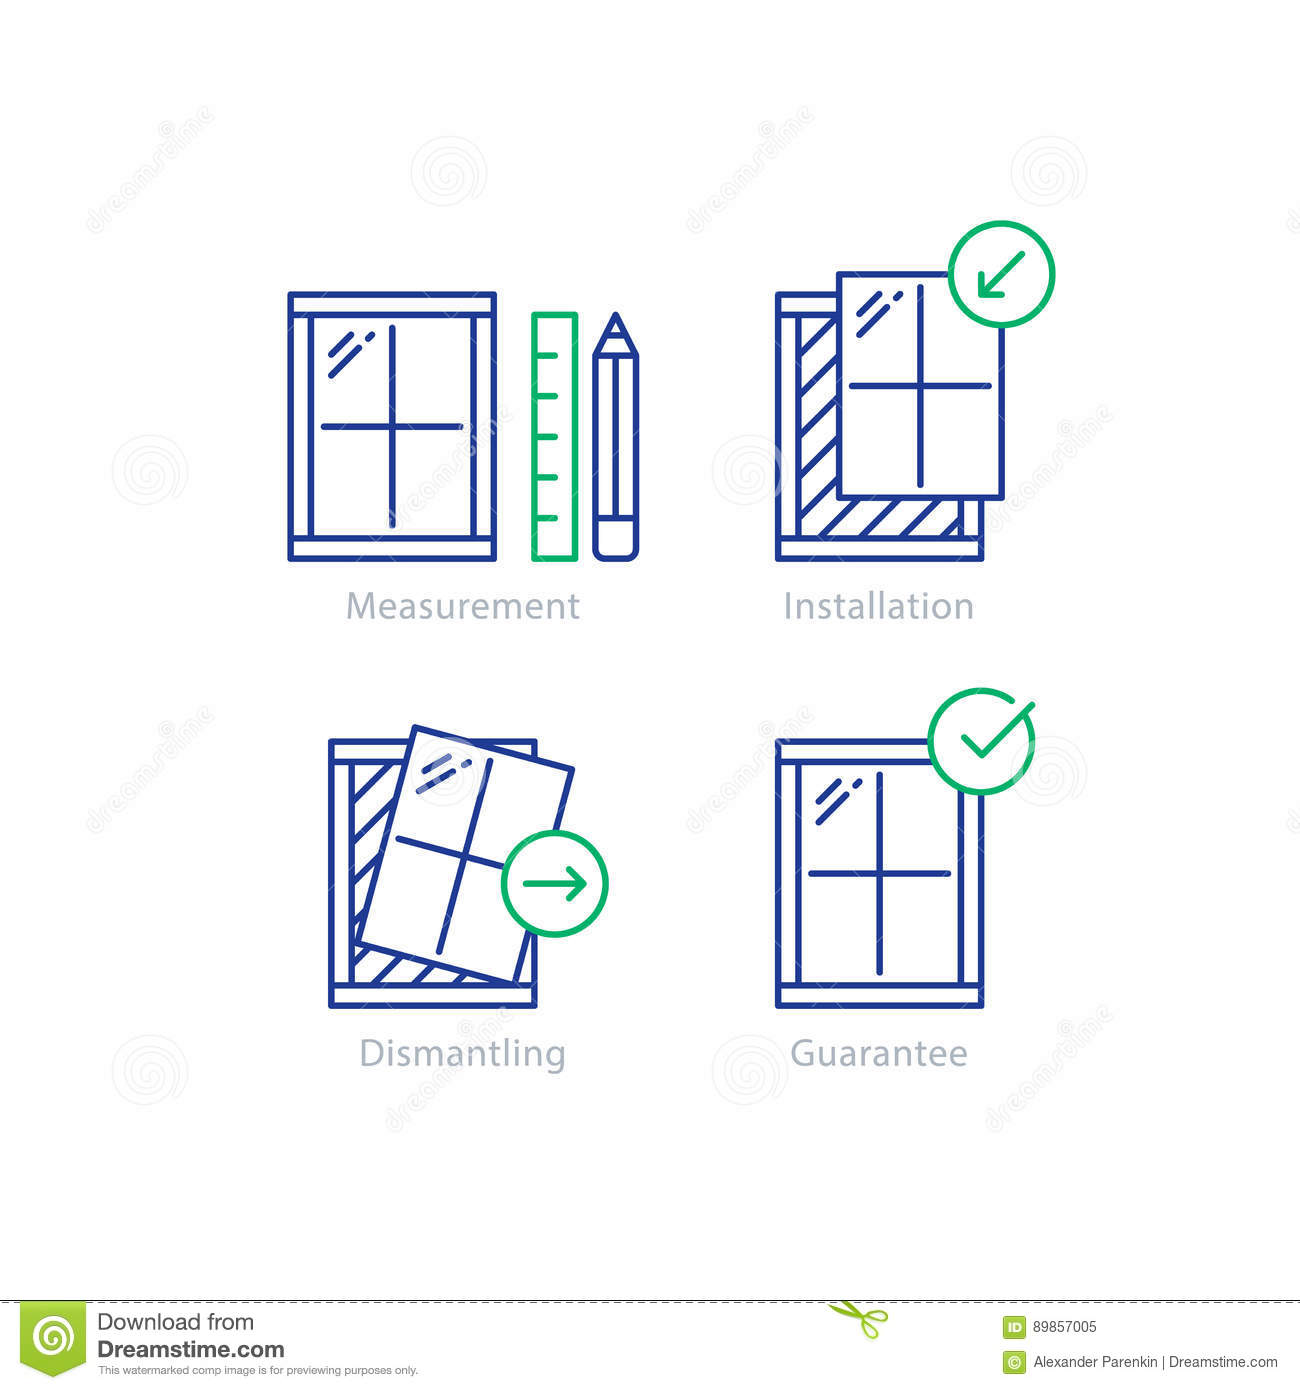 How do you measure windows sizes for replacements?